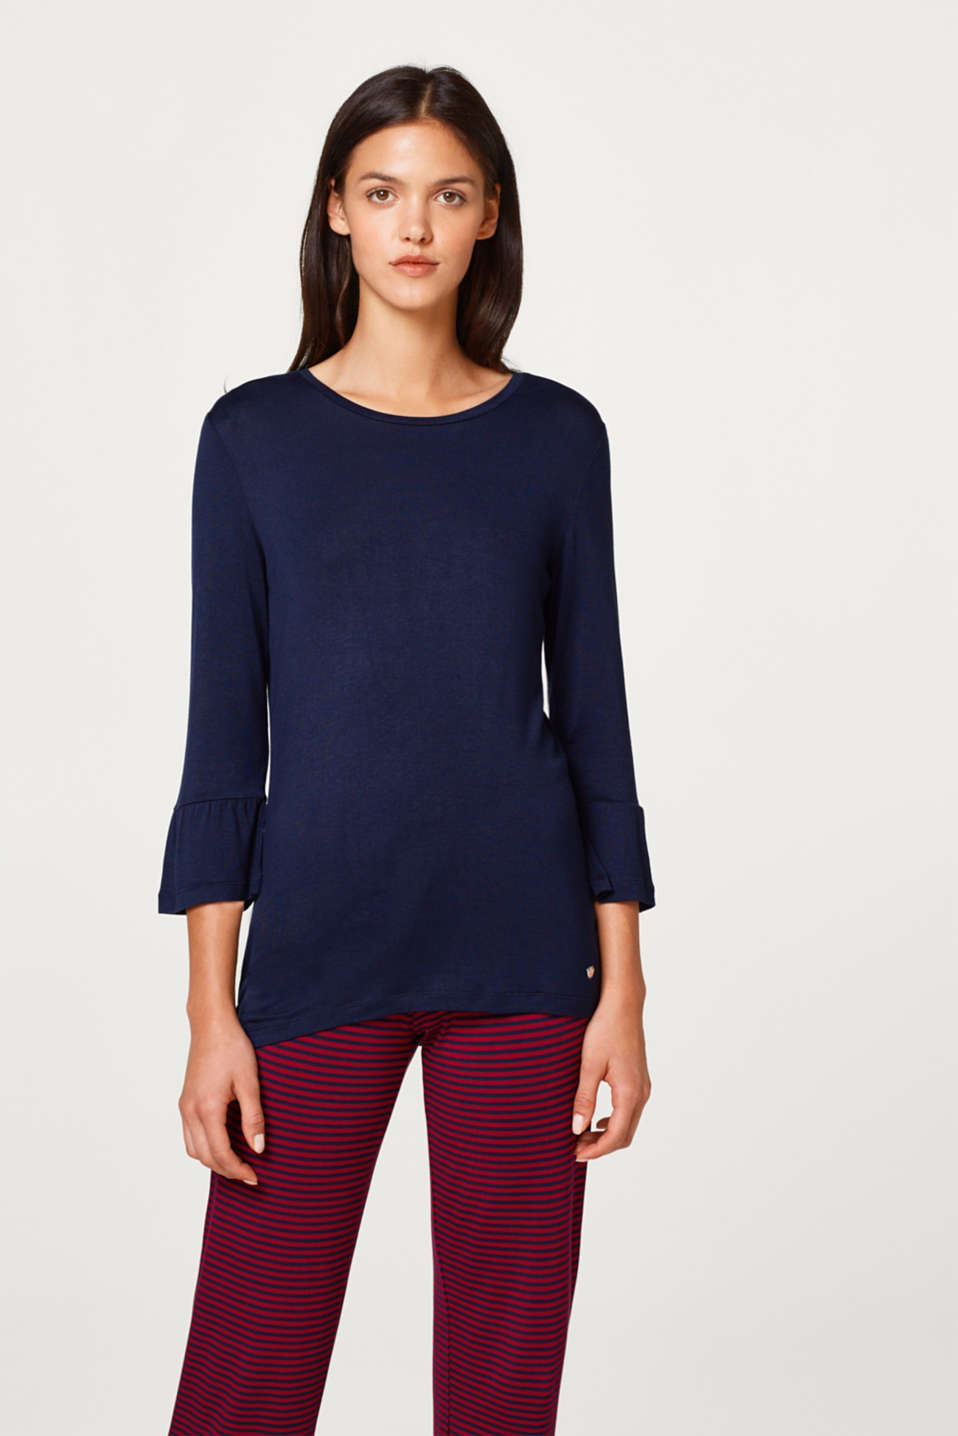 Stretch jersey top with flounce sleeves